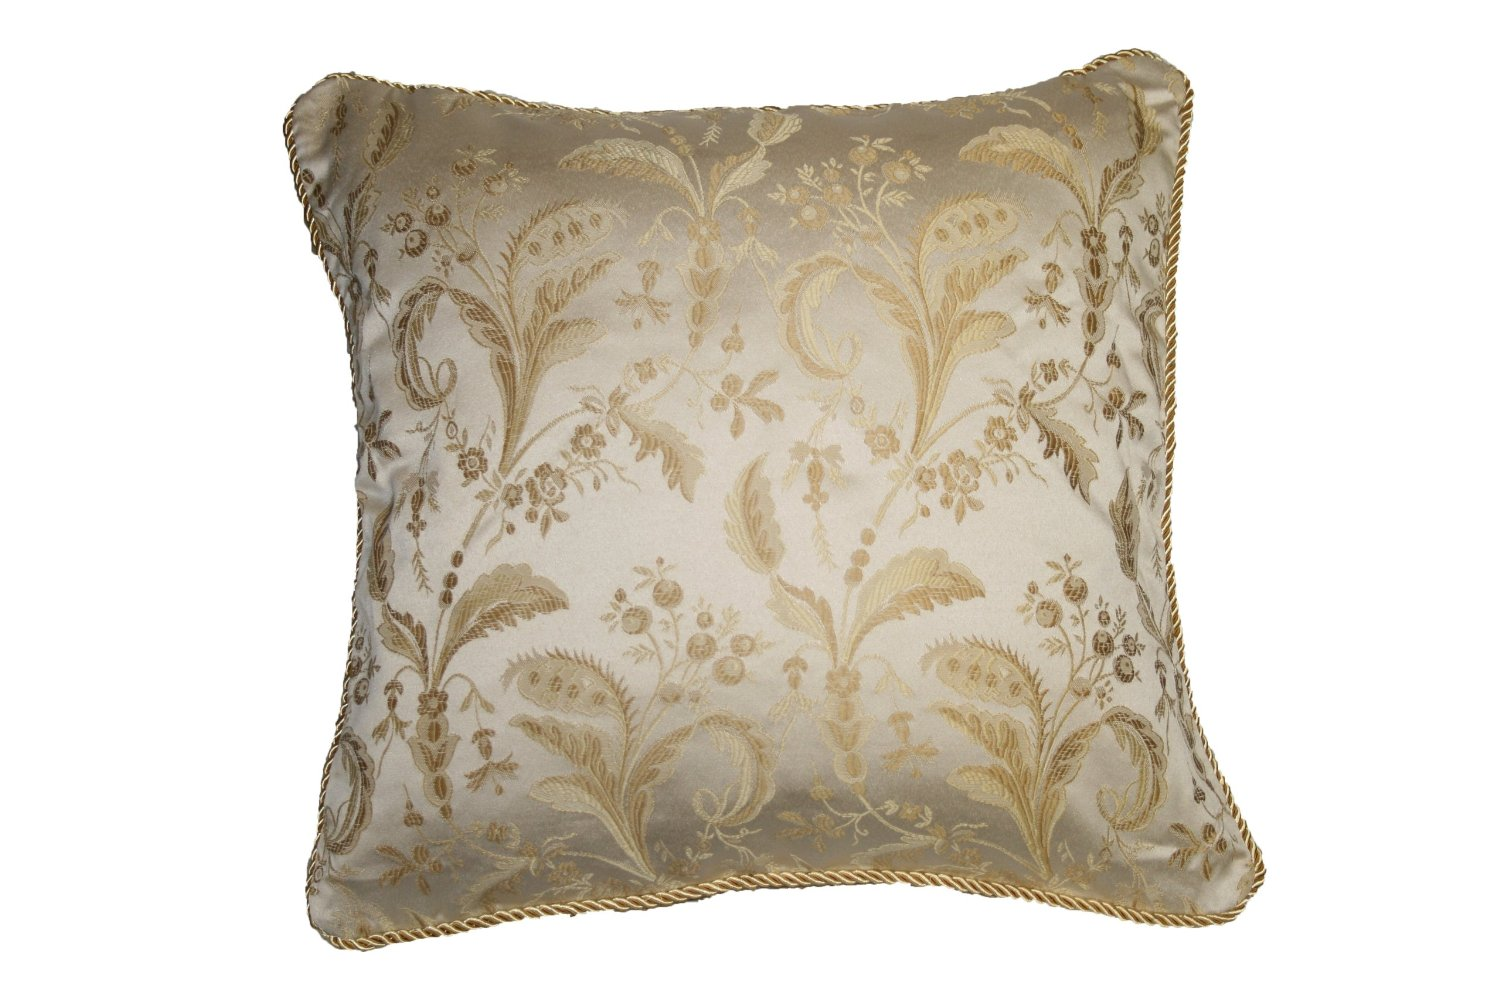 Throw Pillows Damask : Luxury Damask Design Decorative Throw Pillow eBay